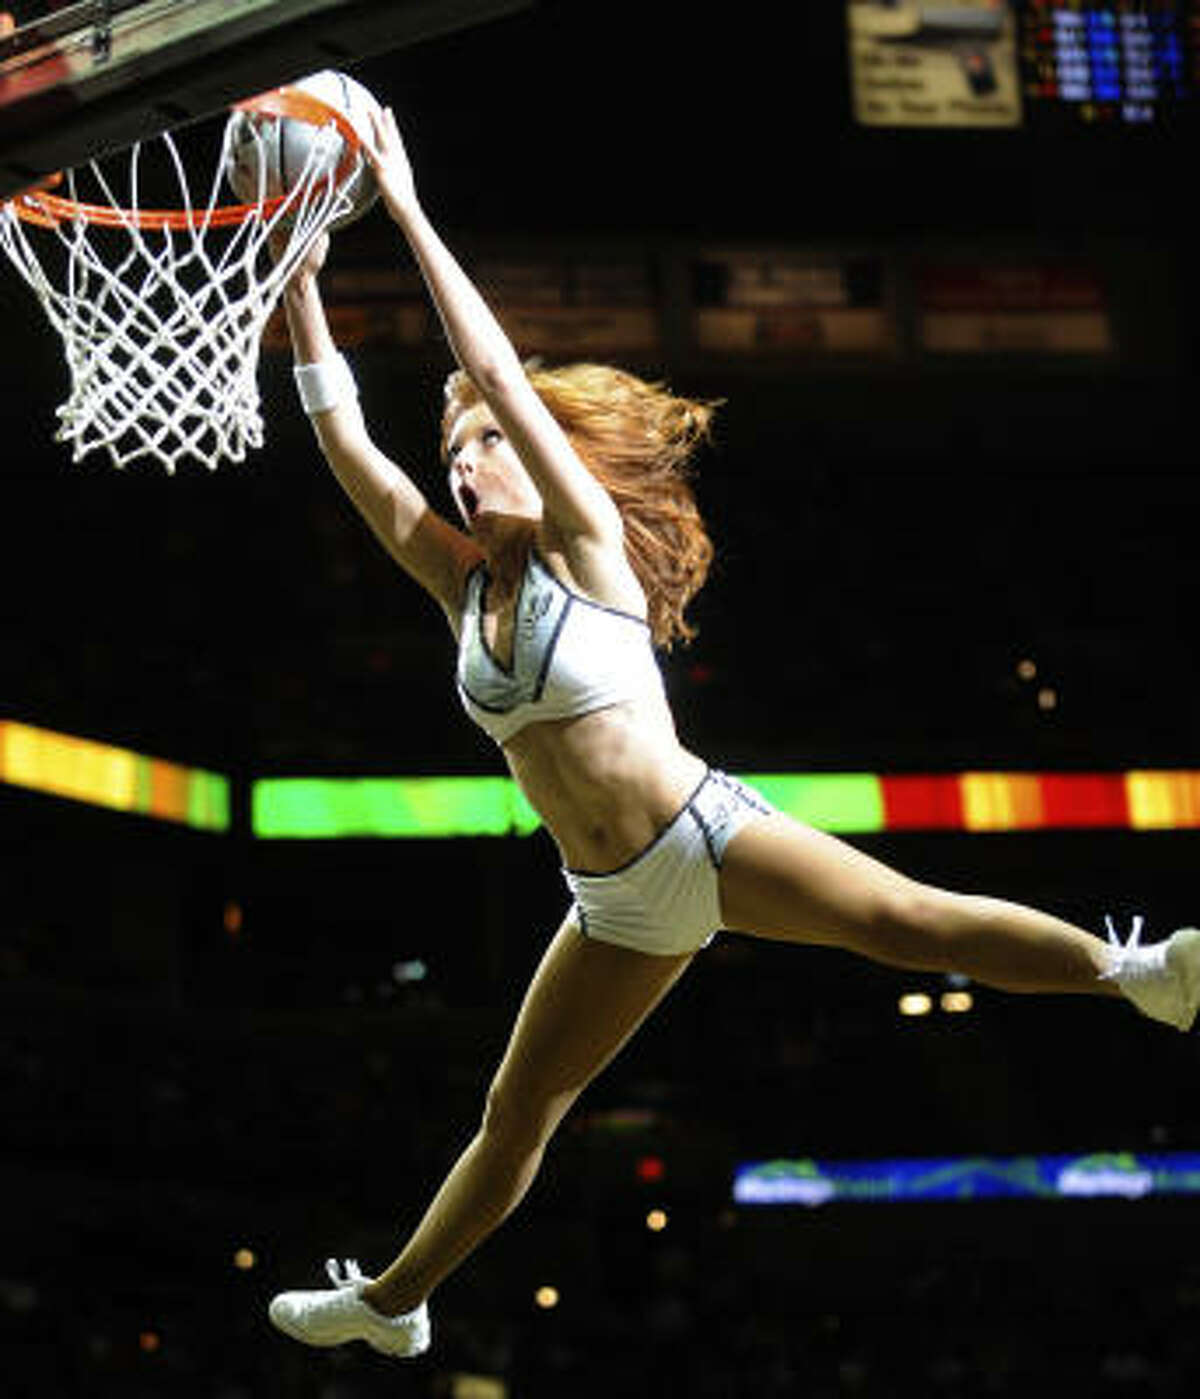 A Silver Dancer dunks the ball during a timeout of the Rockets-Spurs game in San Antonio on Wednesday, March 31.